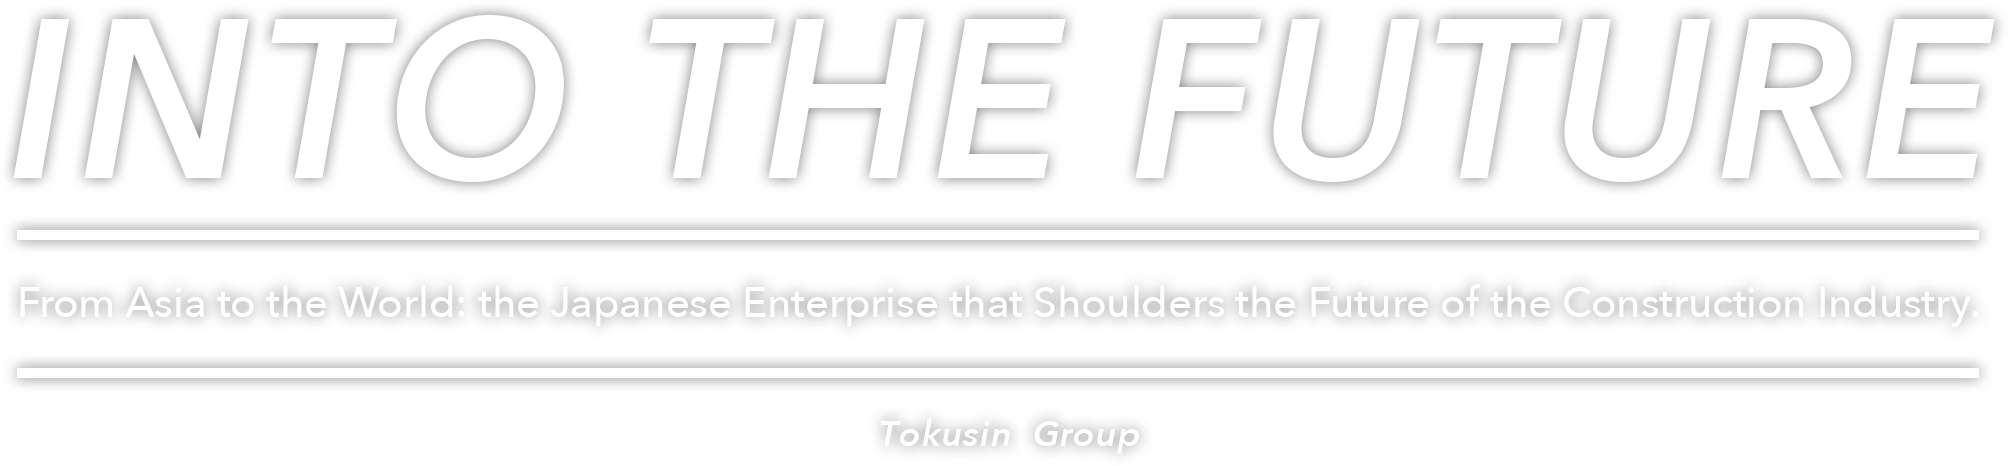 Into the Future From Asia to the World: the Japanese Enterprise that Shoulders the Future of the Construction Industry